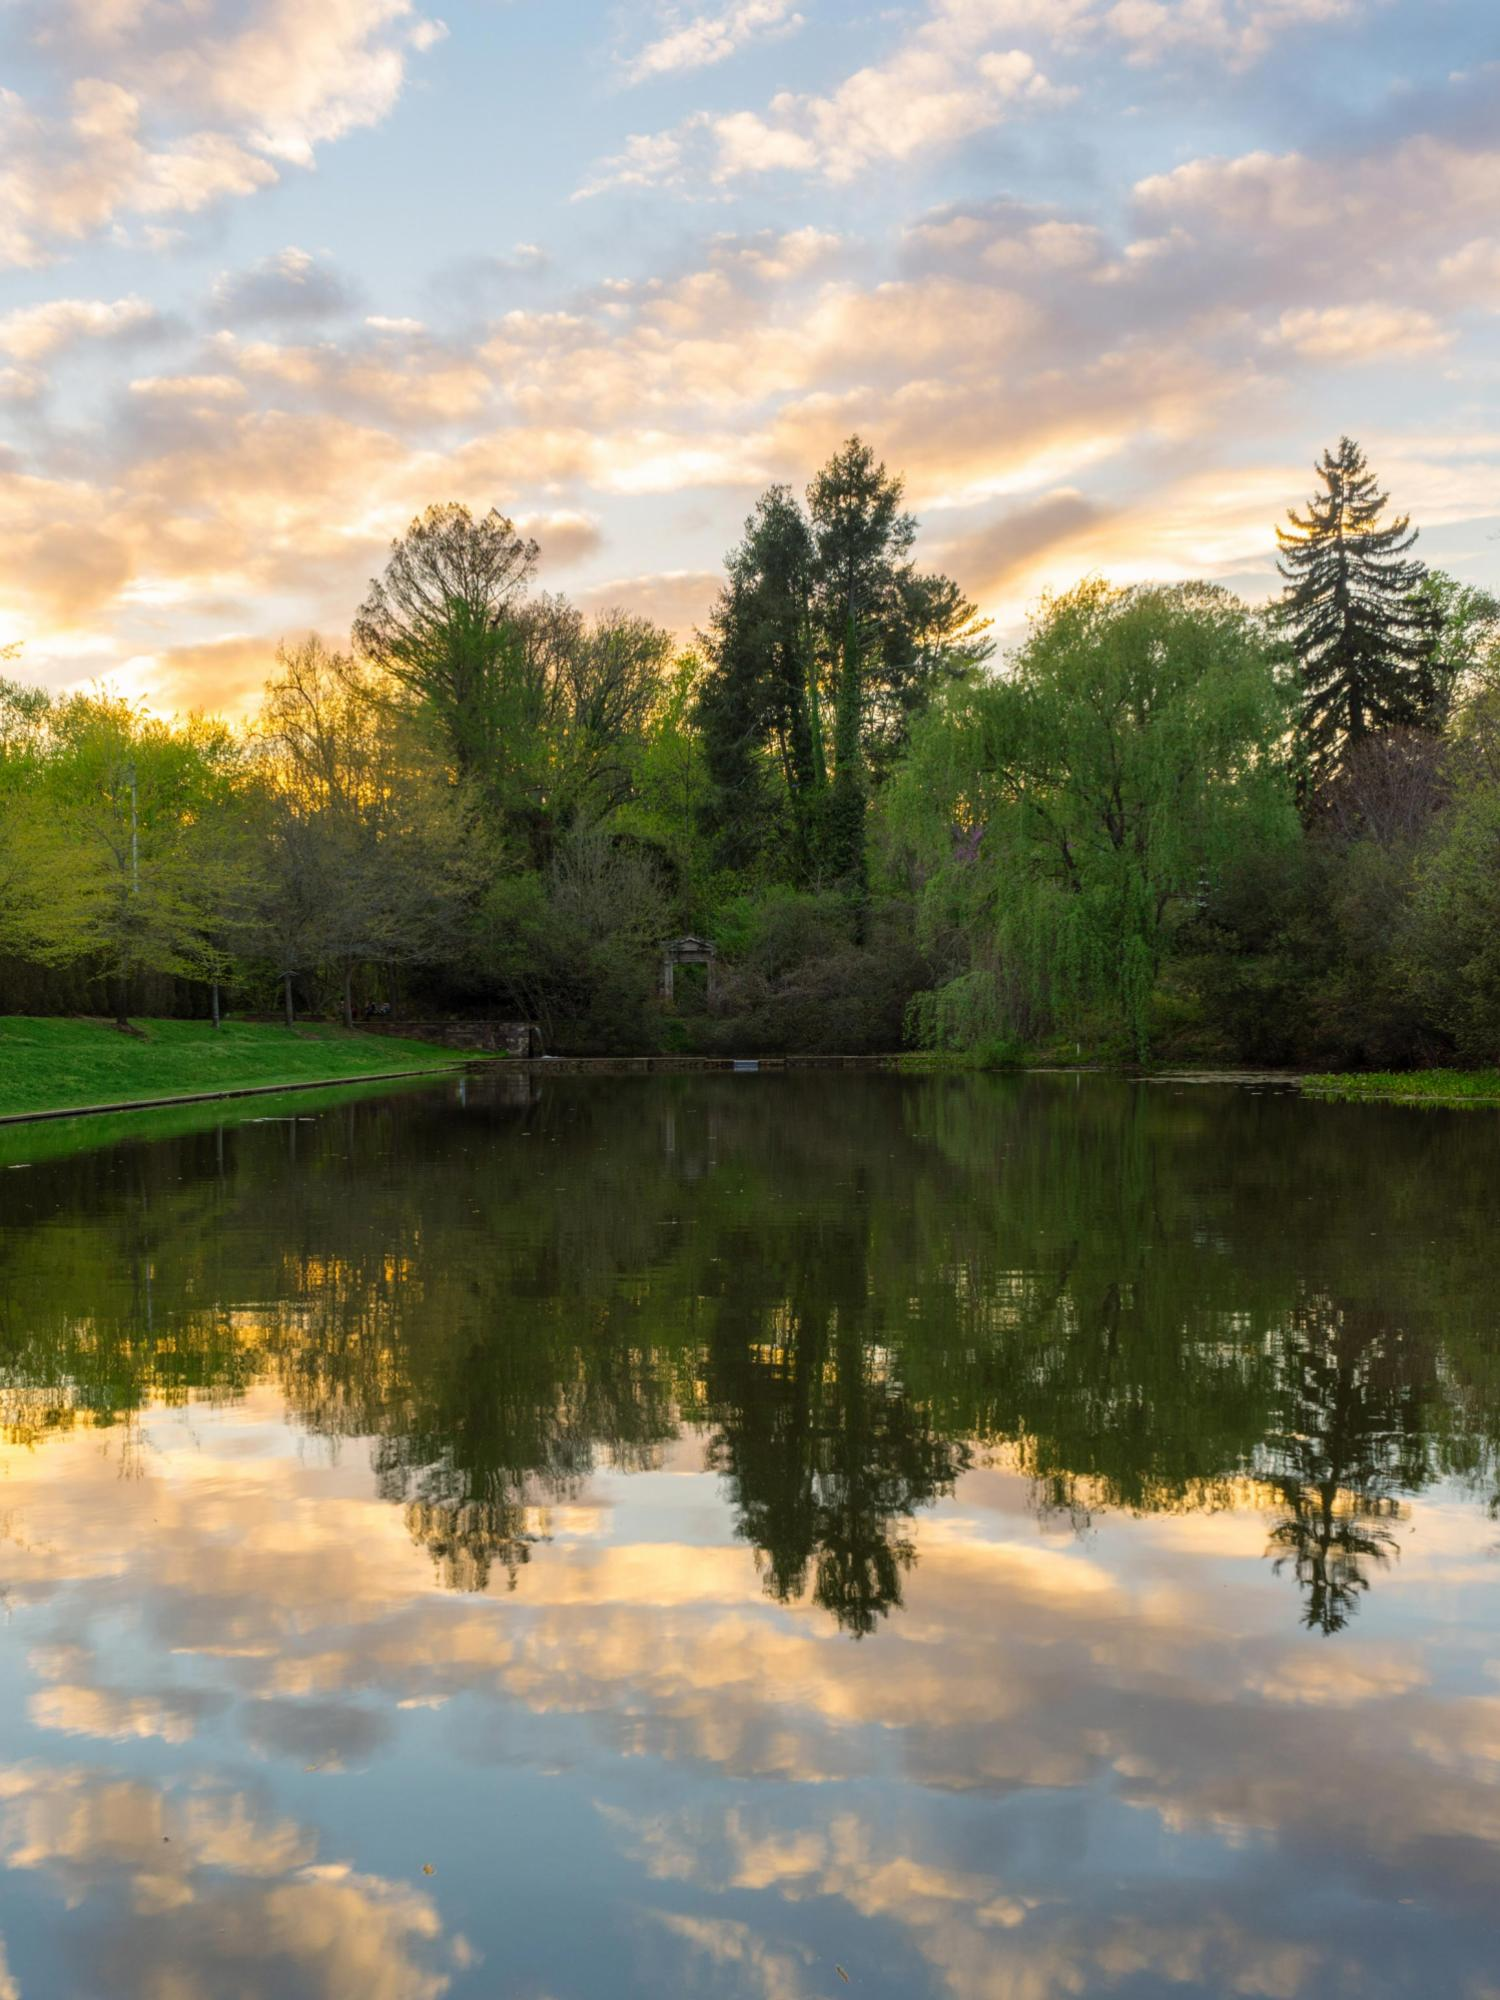 The winner of the UVA Spring Photo Contest captured the serenity of the pond at the Dell.